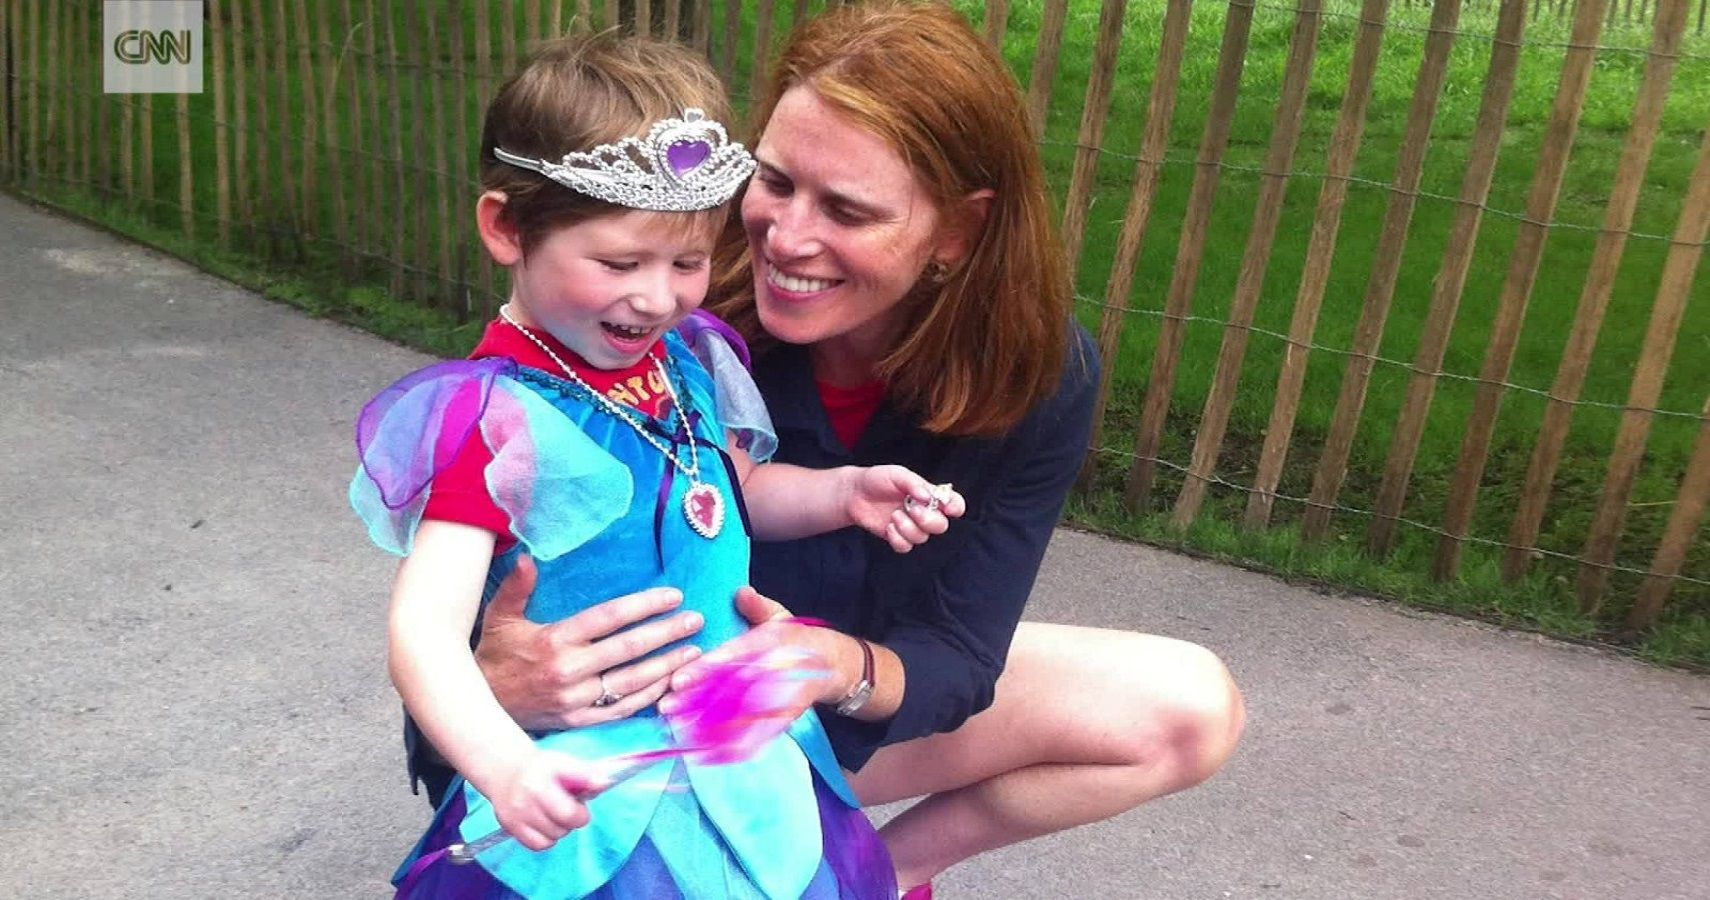 transgender children Experts say children who clearly identify as the opposite gender will benefit from starting to transition sooner rather than later kate snow follows two families on their journey.